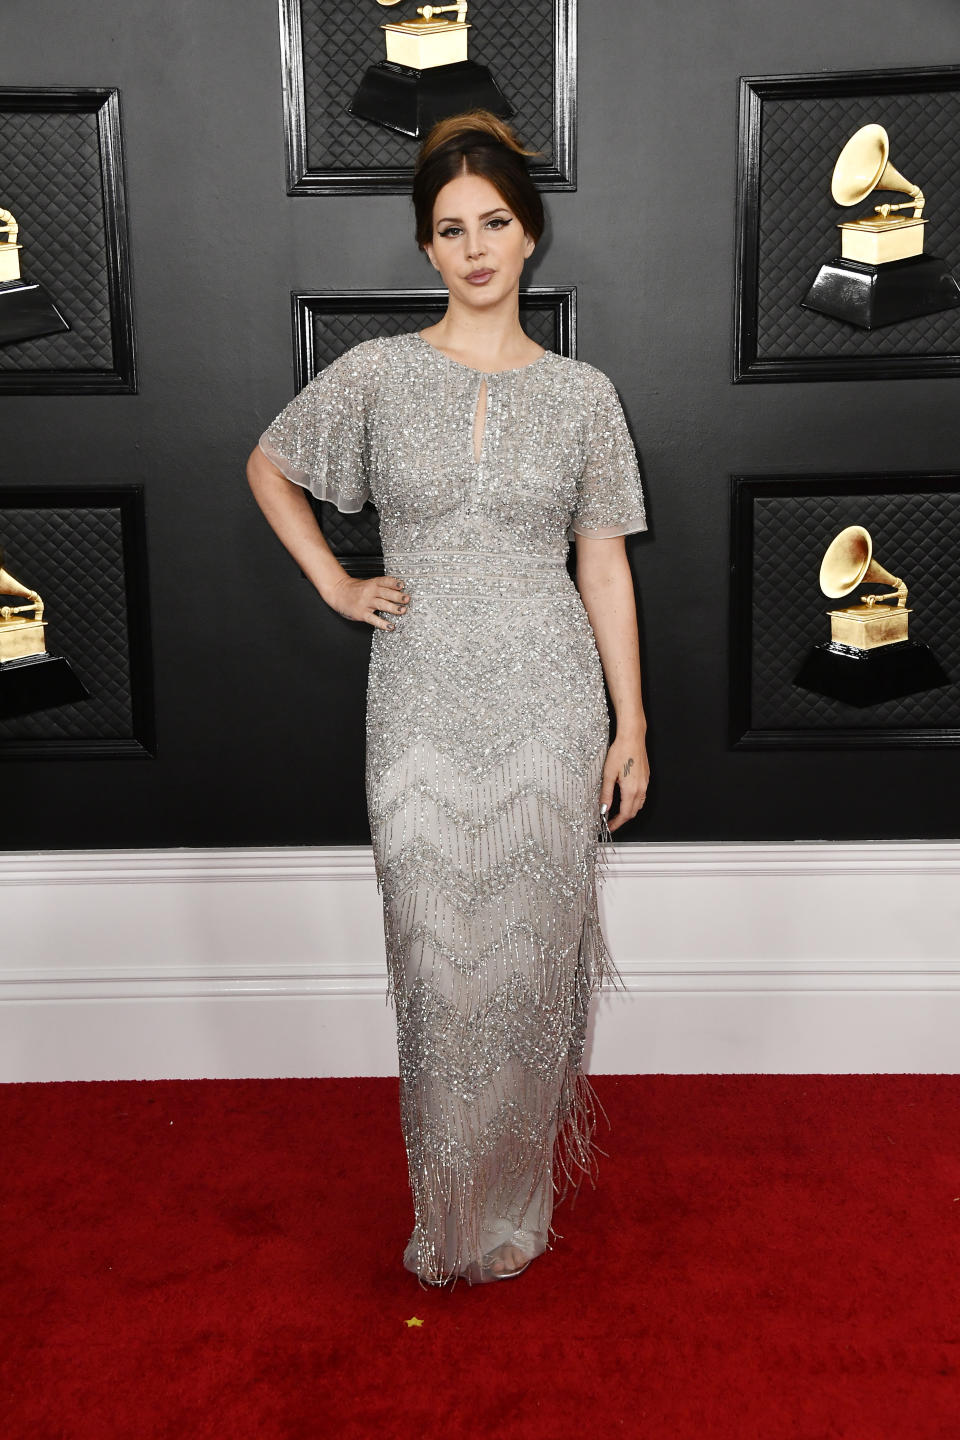 """The """"Norman F--king Rockwell"""" singer-songwriter hit the red carpet in a silver vintage-inspired gown with fringe detail. Del Rey was nominated for two awards, including Album Of The Year."""